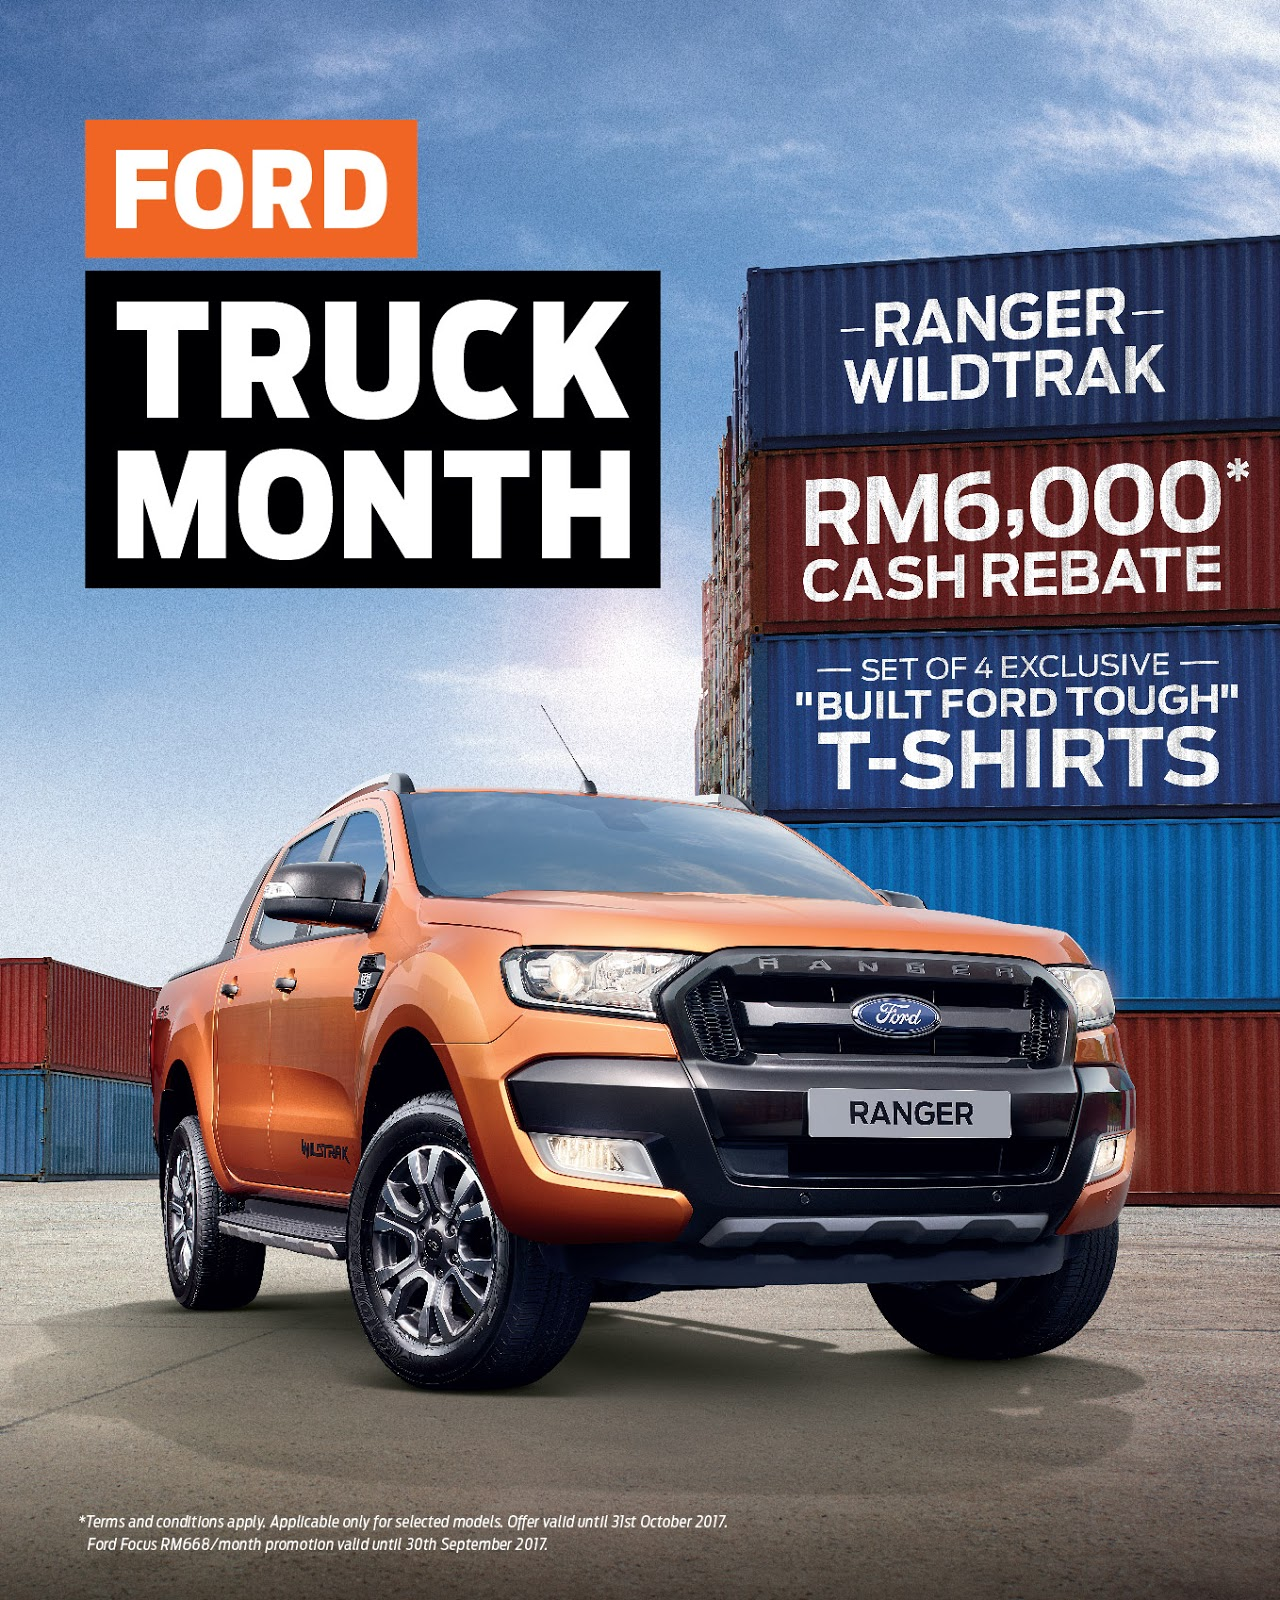 Ford Truck Dealership: Motoring-Malaysia: Offers & Promotions: FORD TRUCK MONTH